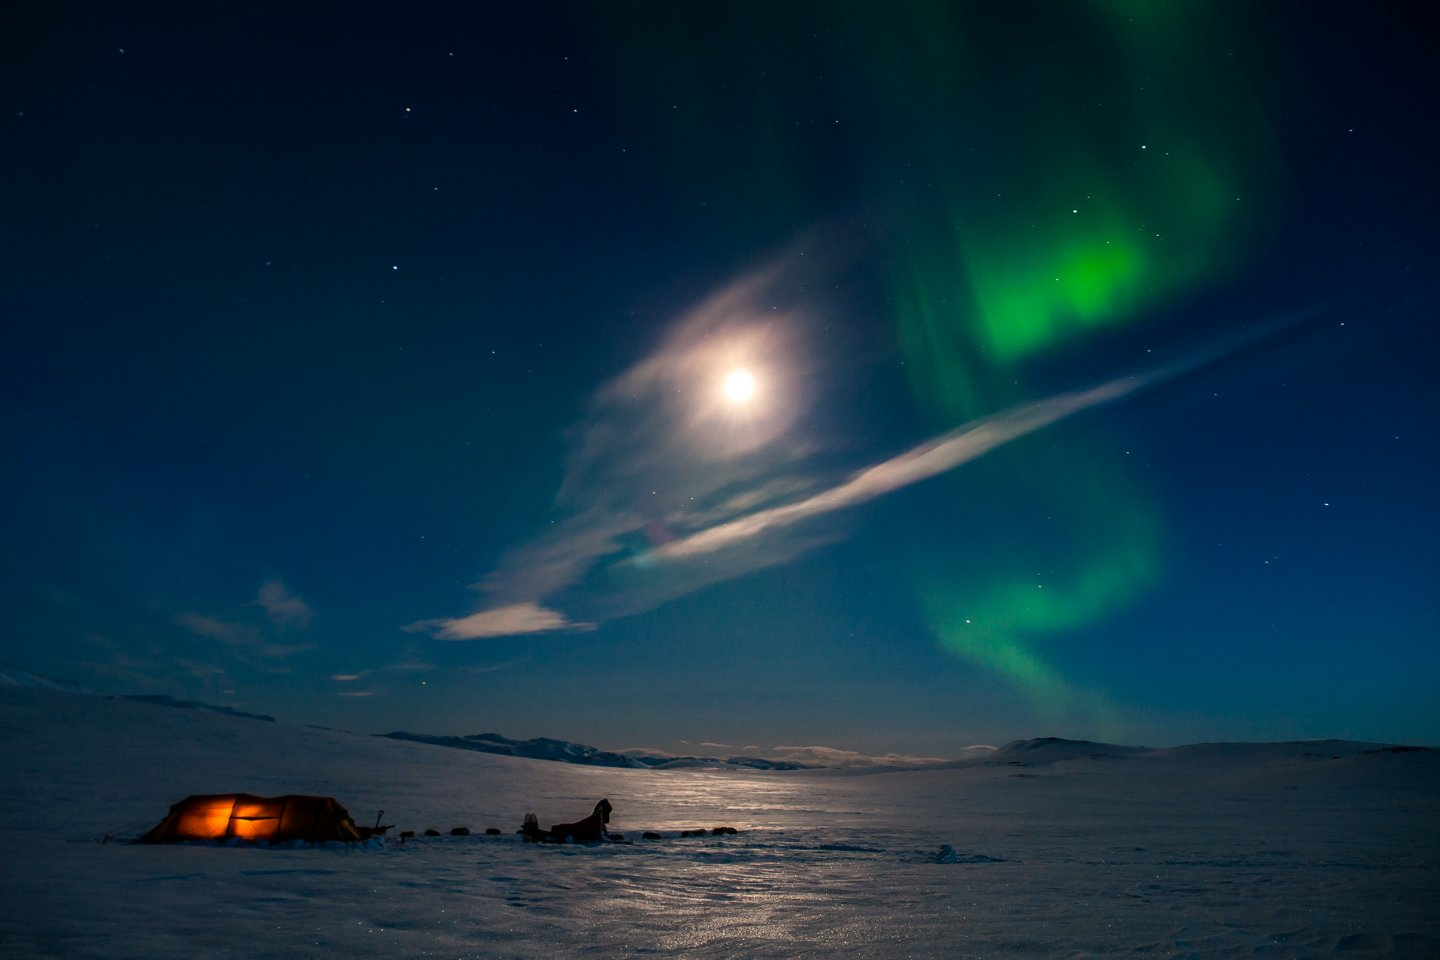 Northern lights with fullmoon